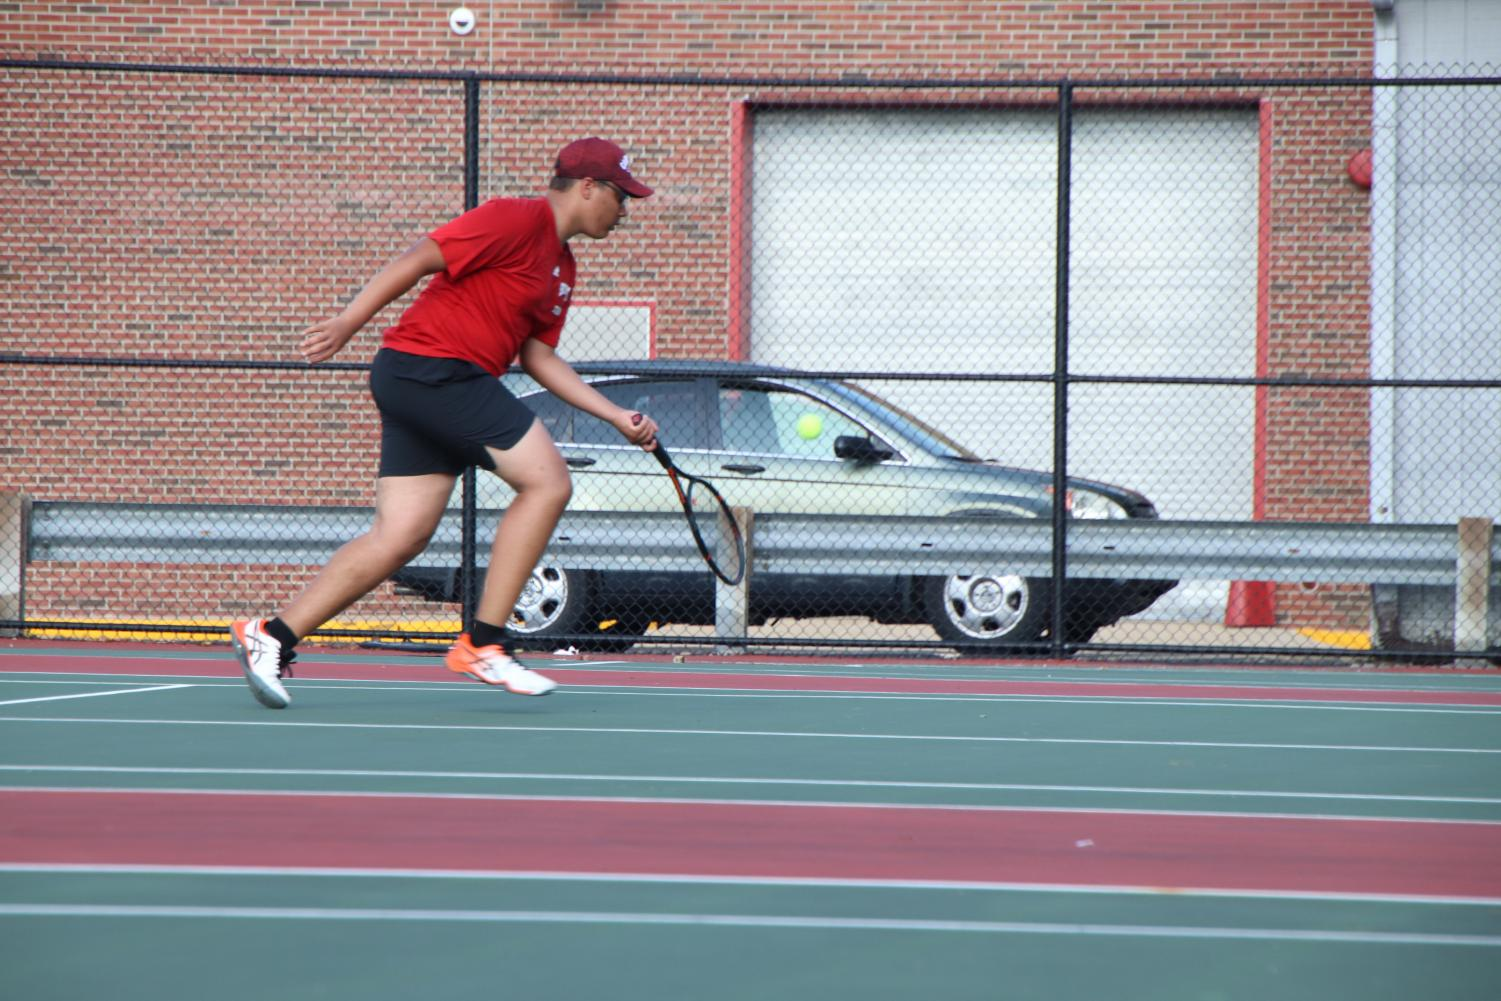 Senior+Brendan+Tyner+runs+up+to+hit+the+tennis+ball+during+his+singles+match.+Tyner+ended+up+losing+1-6+and+3-6.